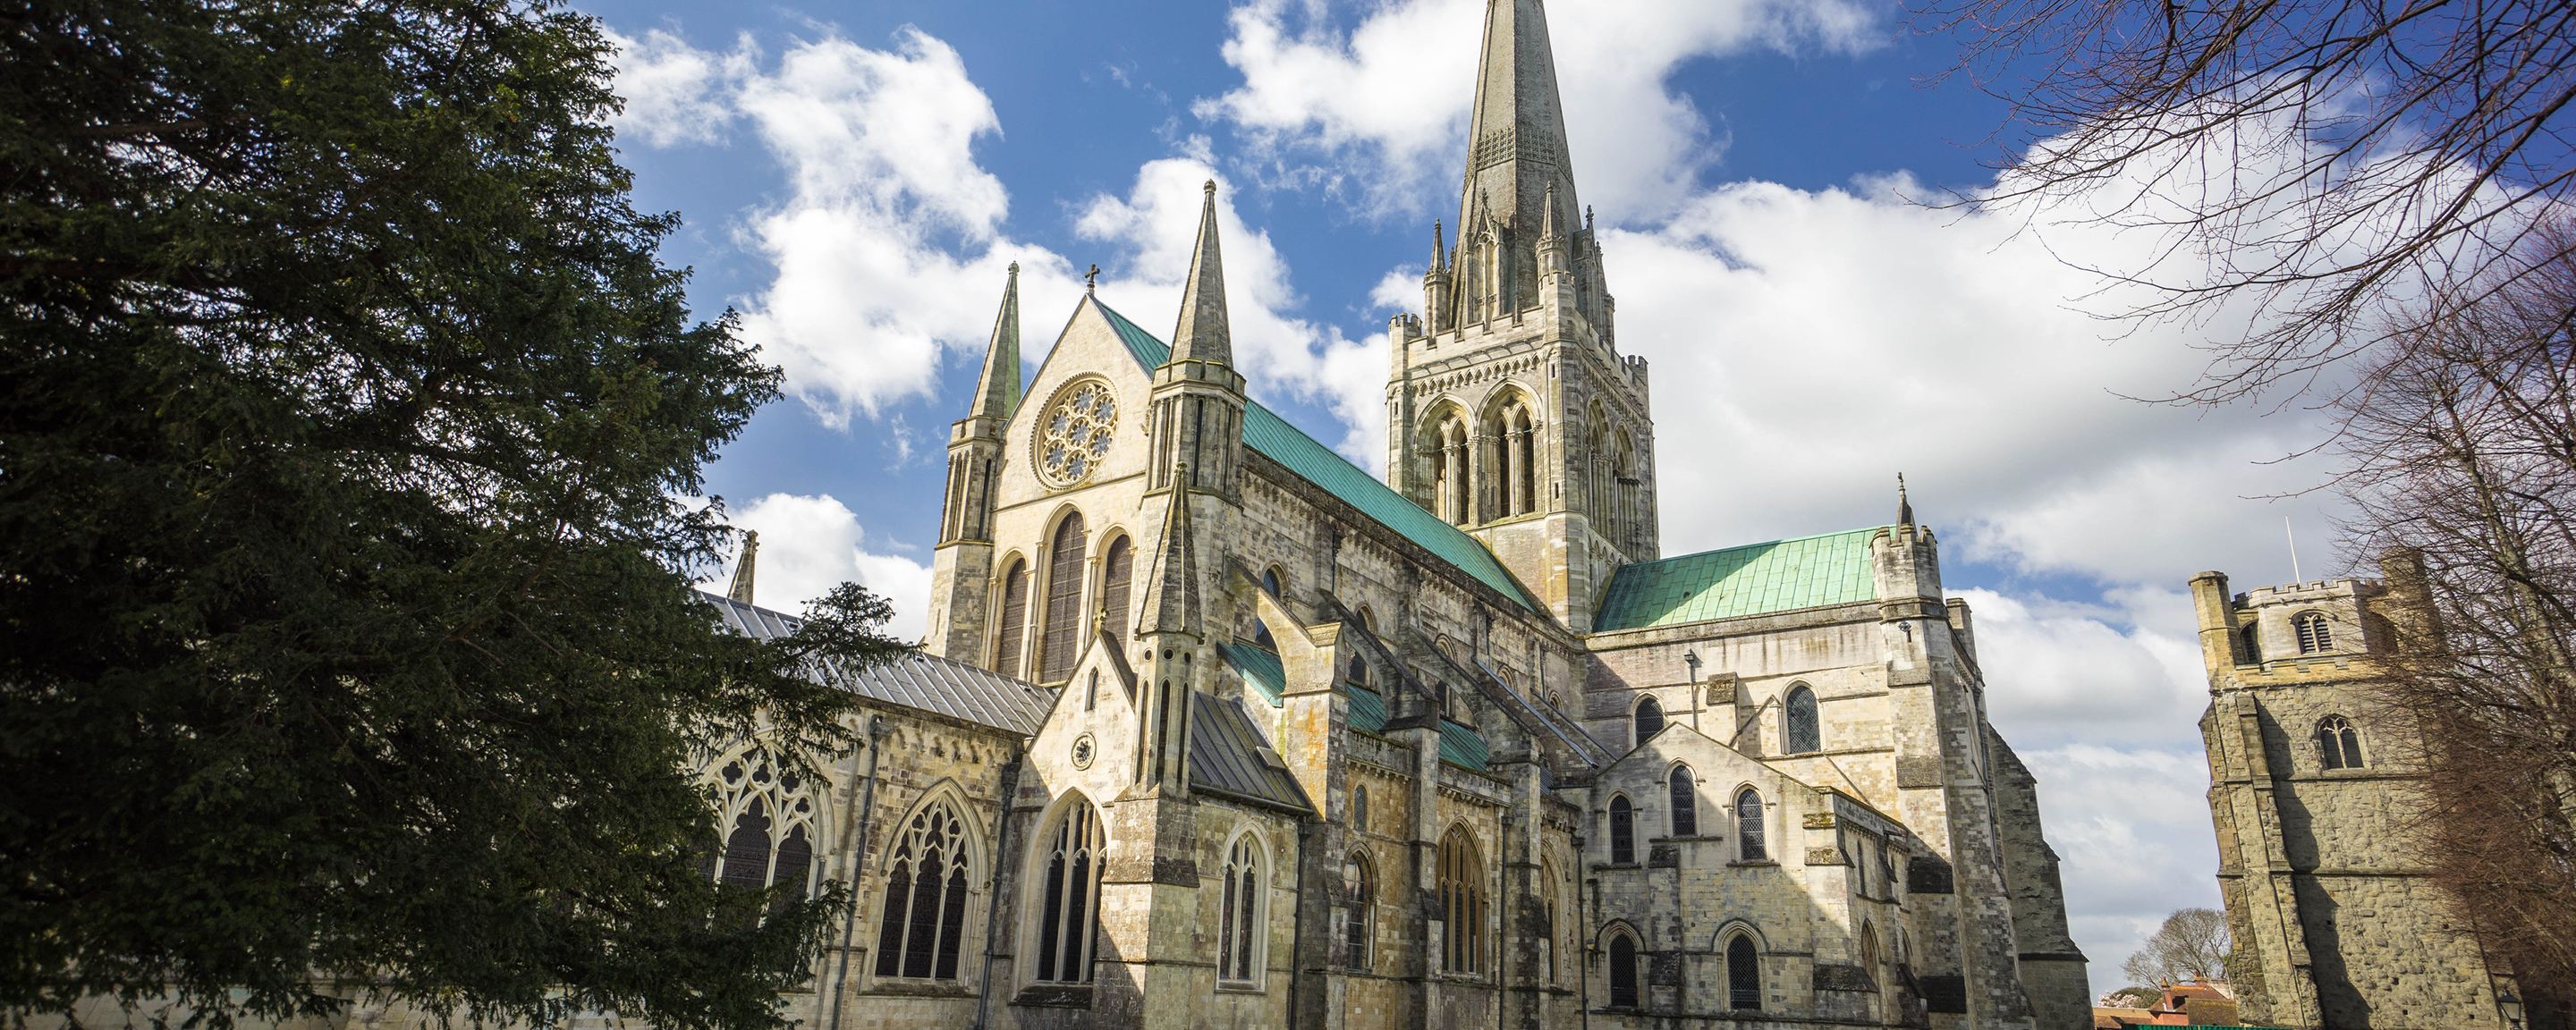 a large stone building with Chichester Cathedral in the background